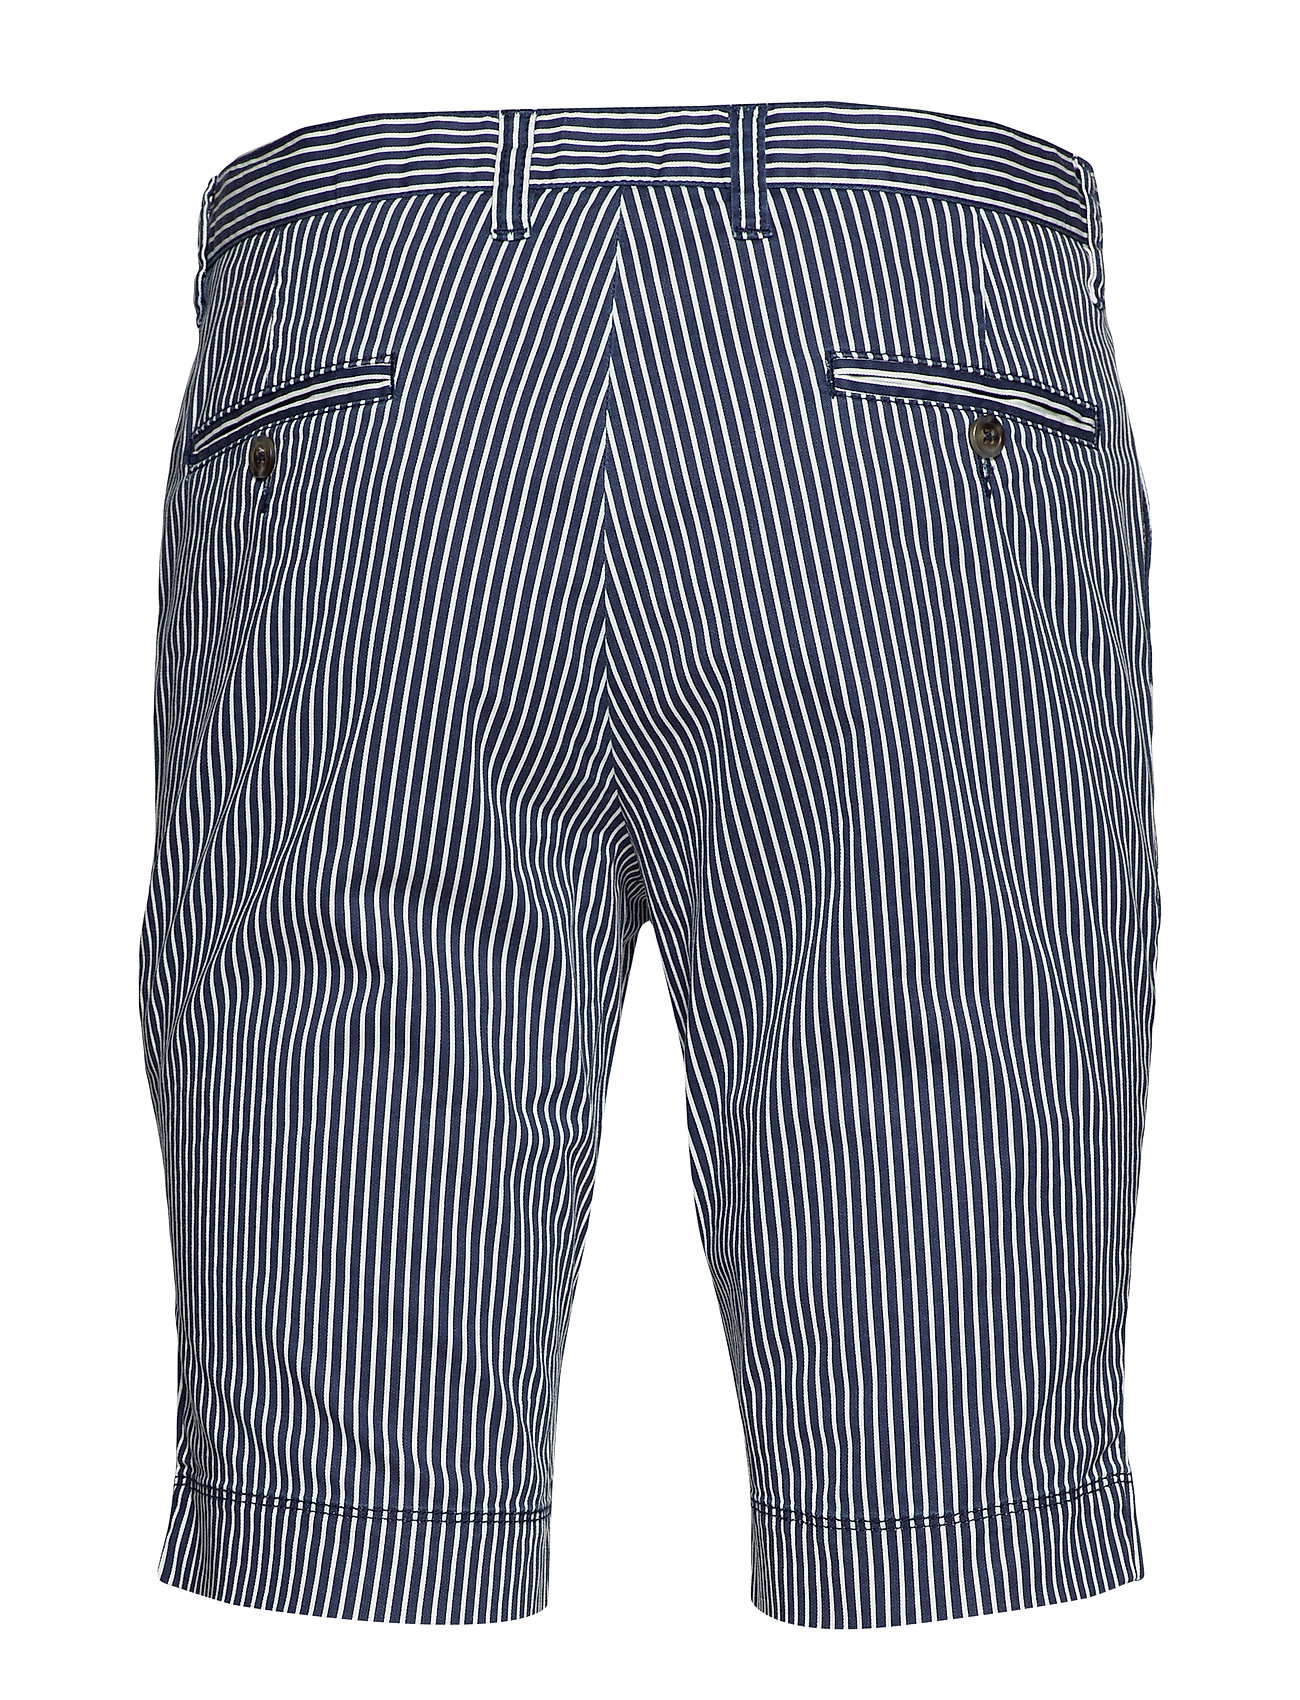 Shortsmedium 6178 6178 CDolan CDolan BlueSand uJlT3KcF1